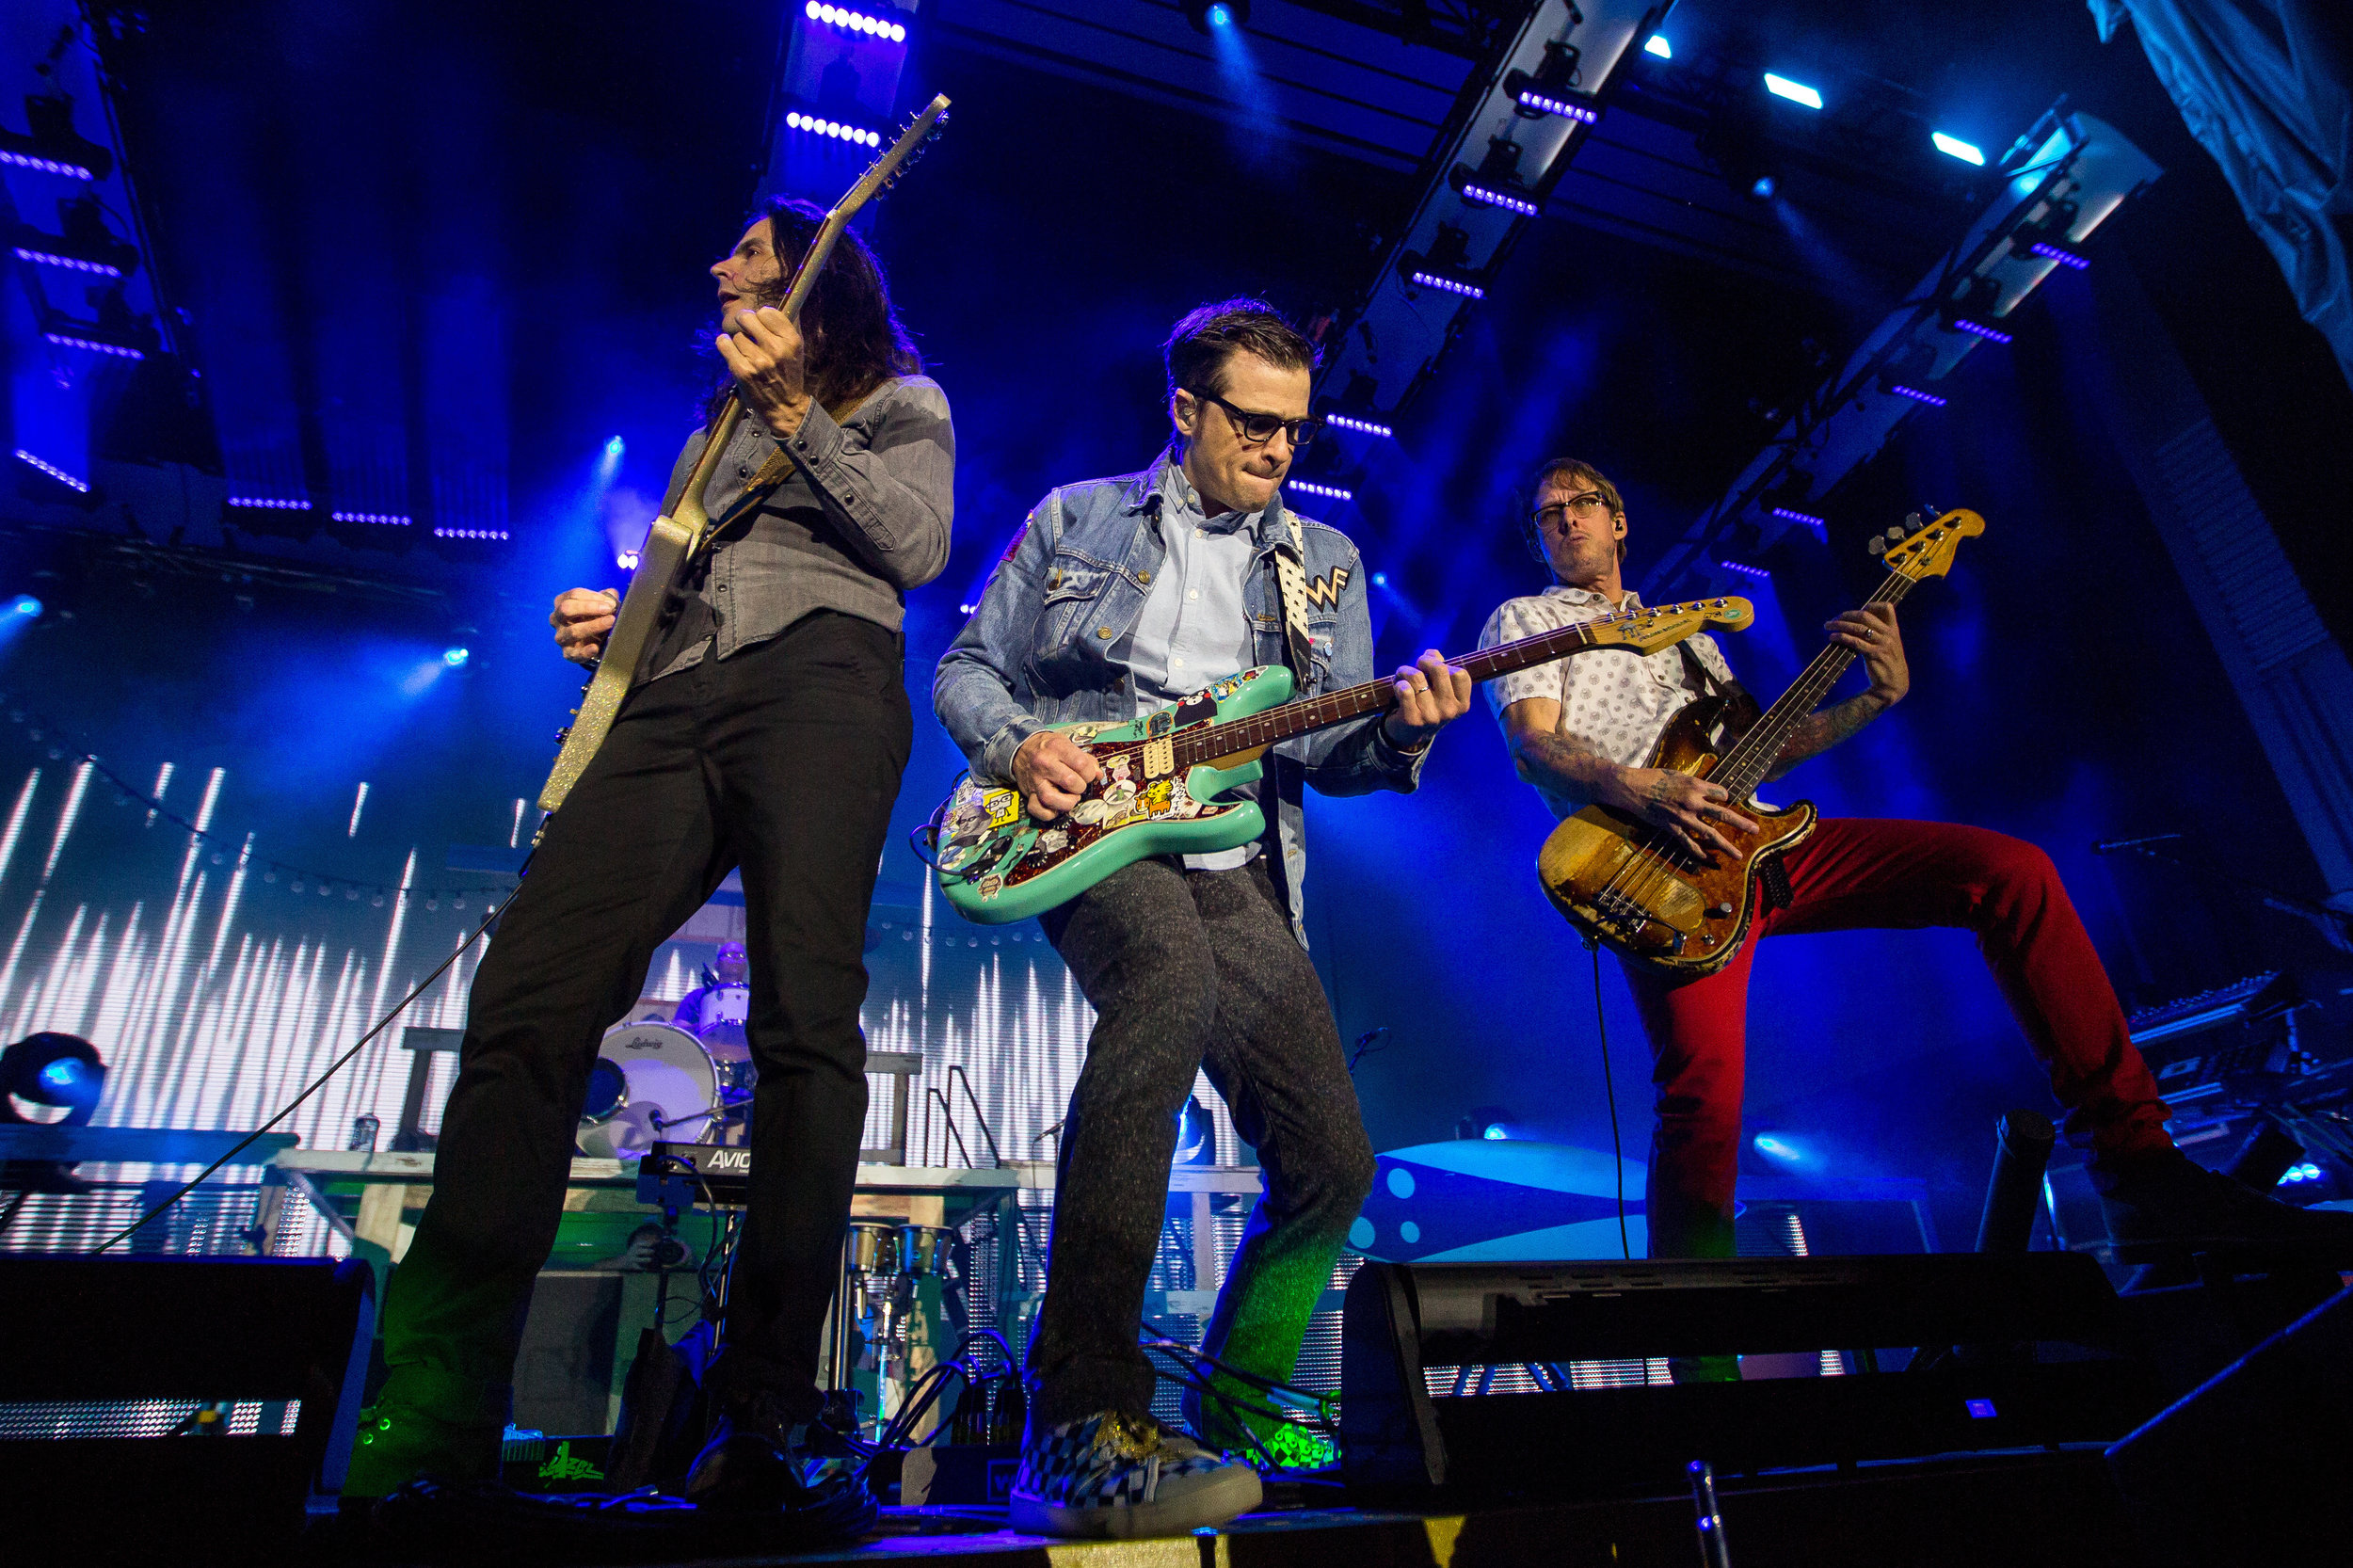 Weezer performs together on center stage at Stage AE in Pittsburgh on Sunday night.